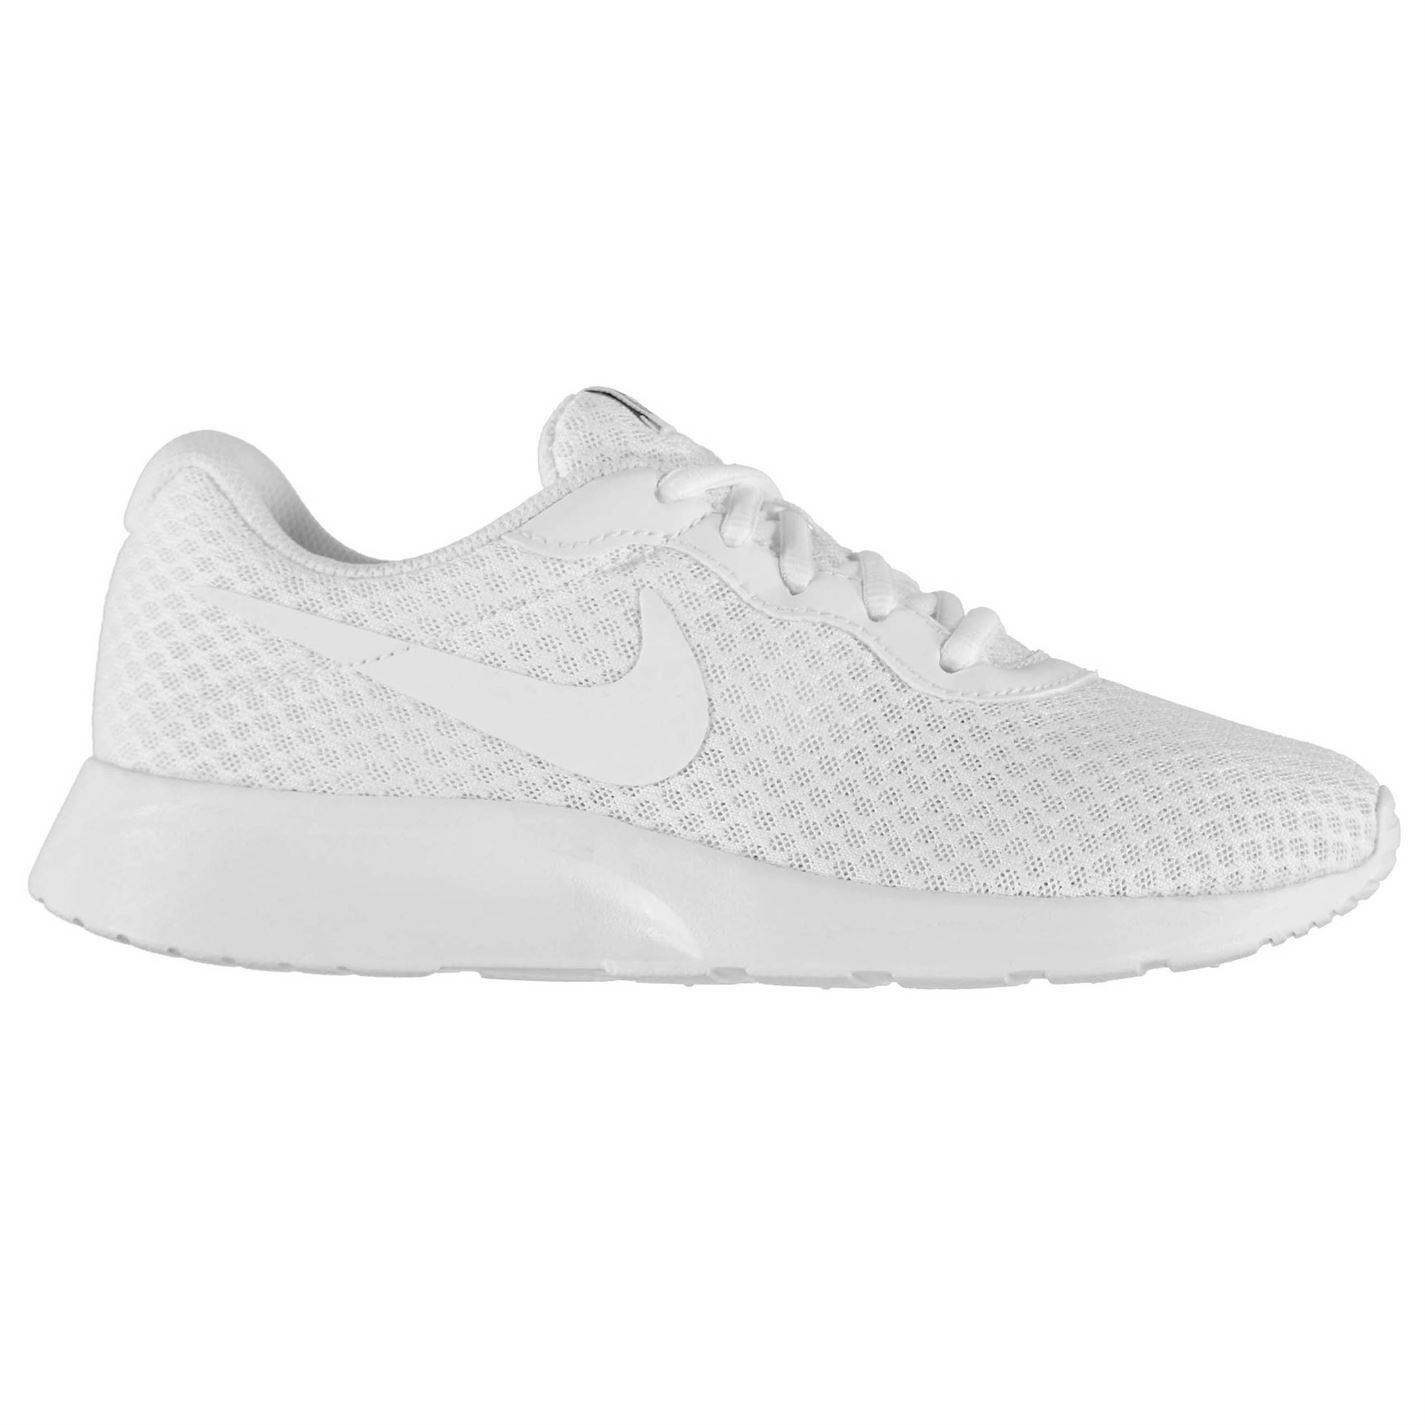 6826b05bd1c Details about Nike Tanjun Training Shoes Womens White White Gym Fitness  Trainers Sneakers